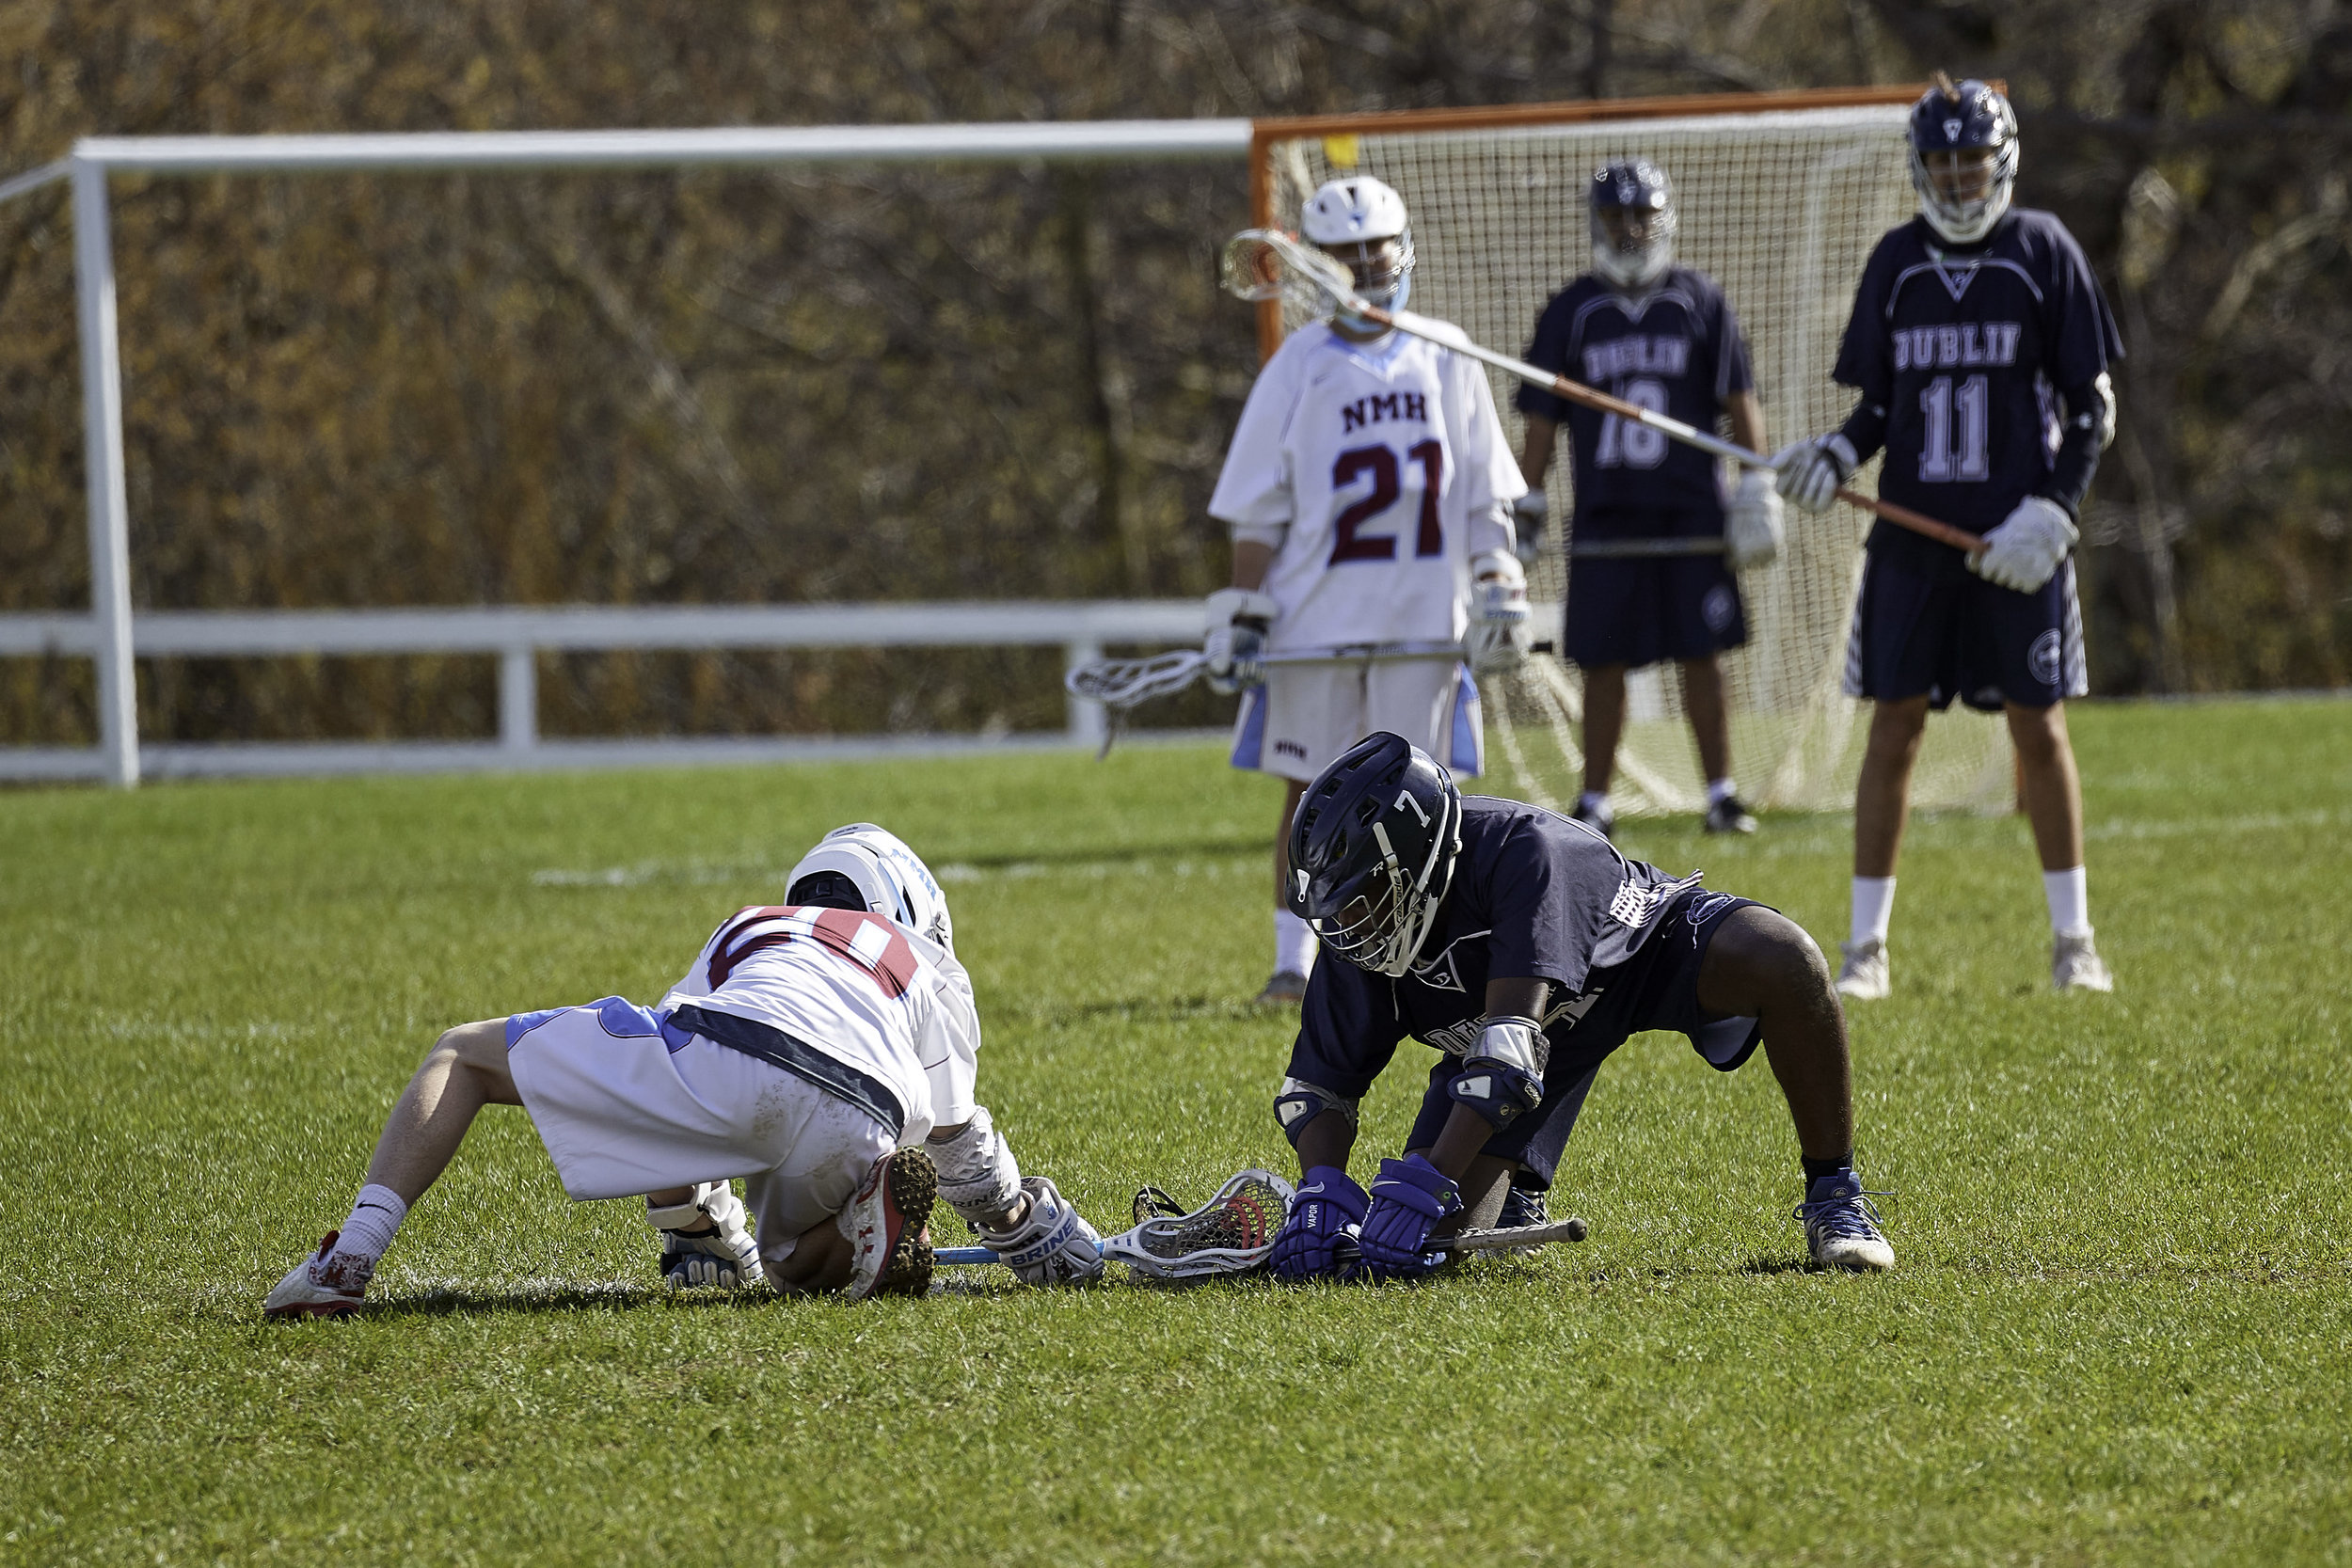 Boys Lax vs Northfield Mount Hermon JV - May 15 2019 - 0060.jpg